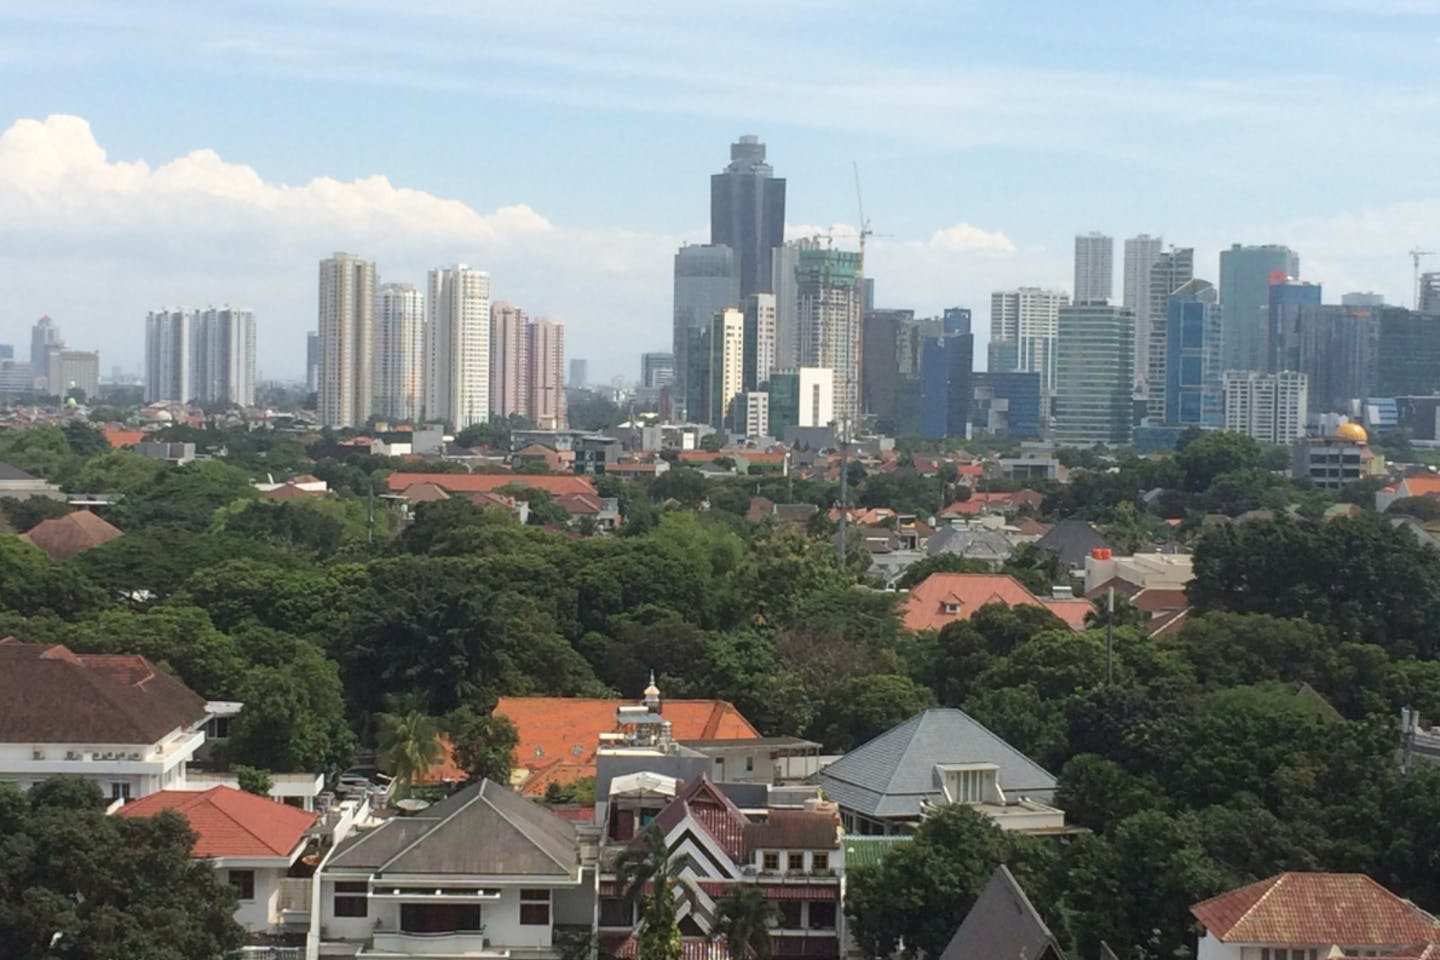 jakarta indonesia - unep project